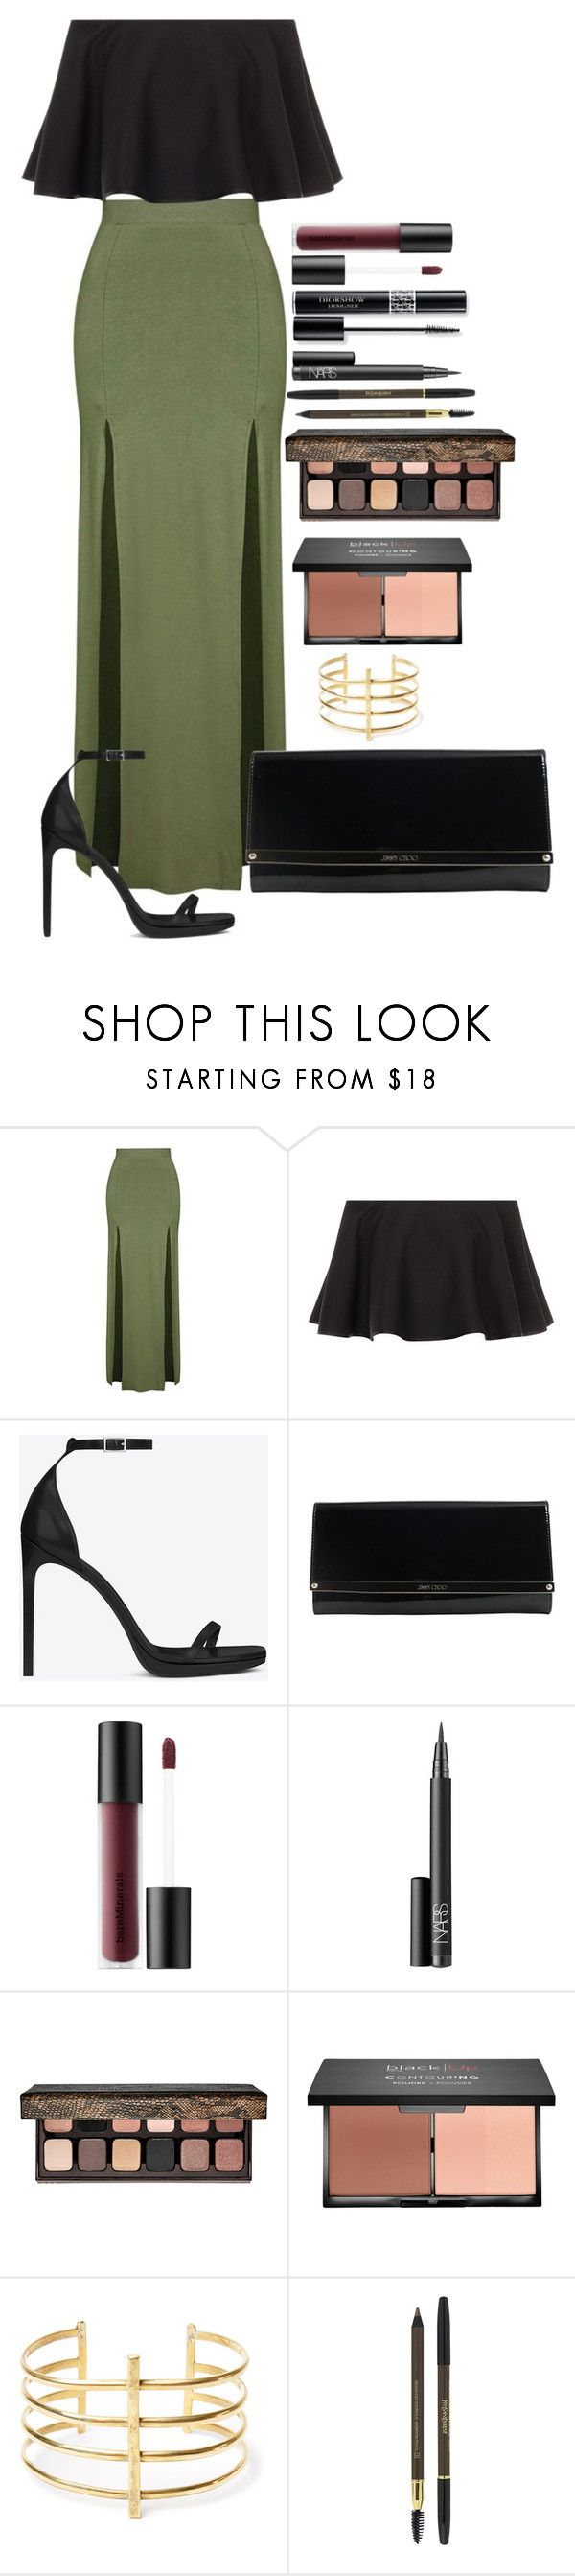 """Untitled #1580"" by fabianarveloc on Polyvore featuring Topshop, Rosetta Getty, Yves Saint Laurent, Jimmy Choo, Bare Escentuals, Christian Dior, NARS Cosmetics, Laura Mercier and BauXo"